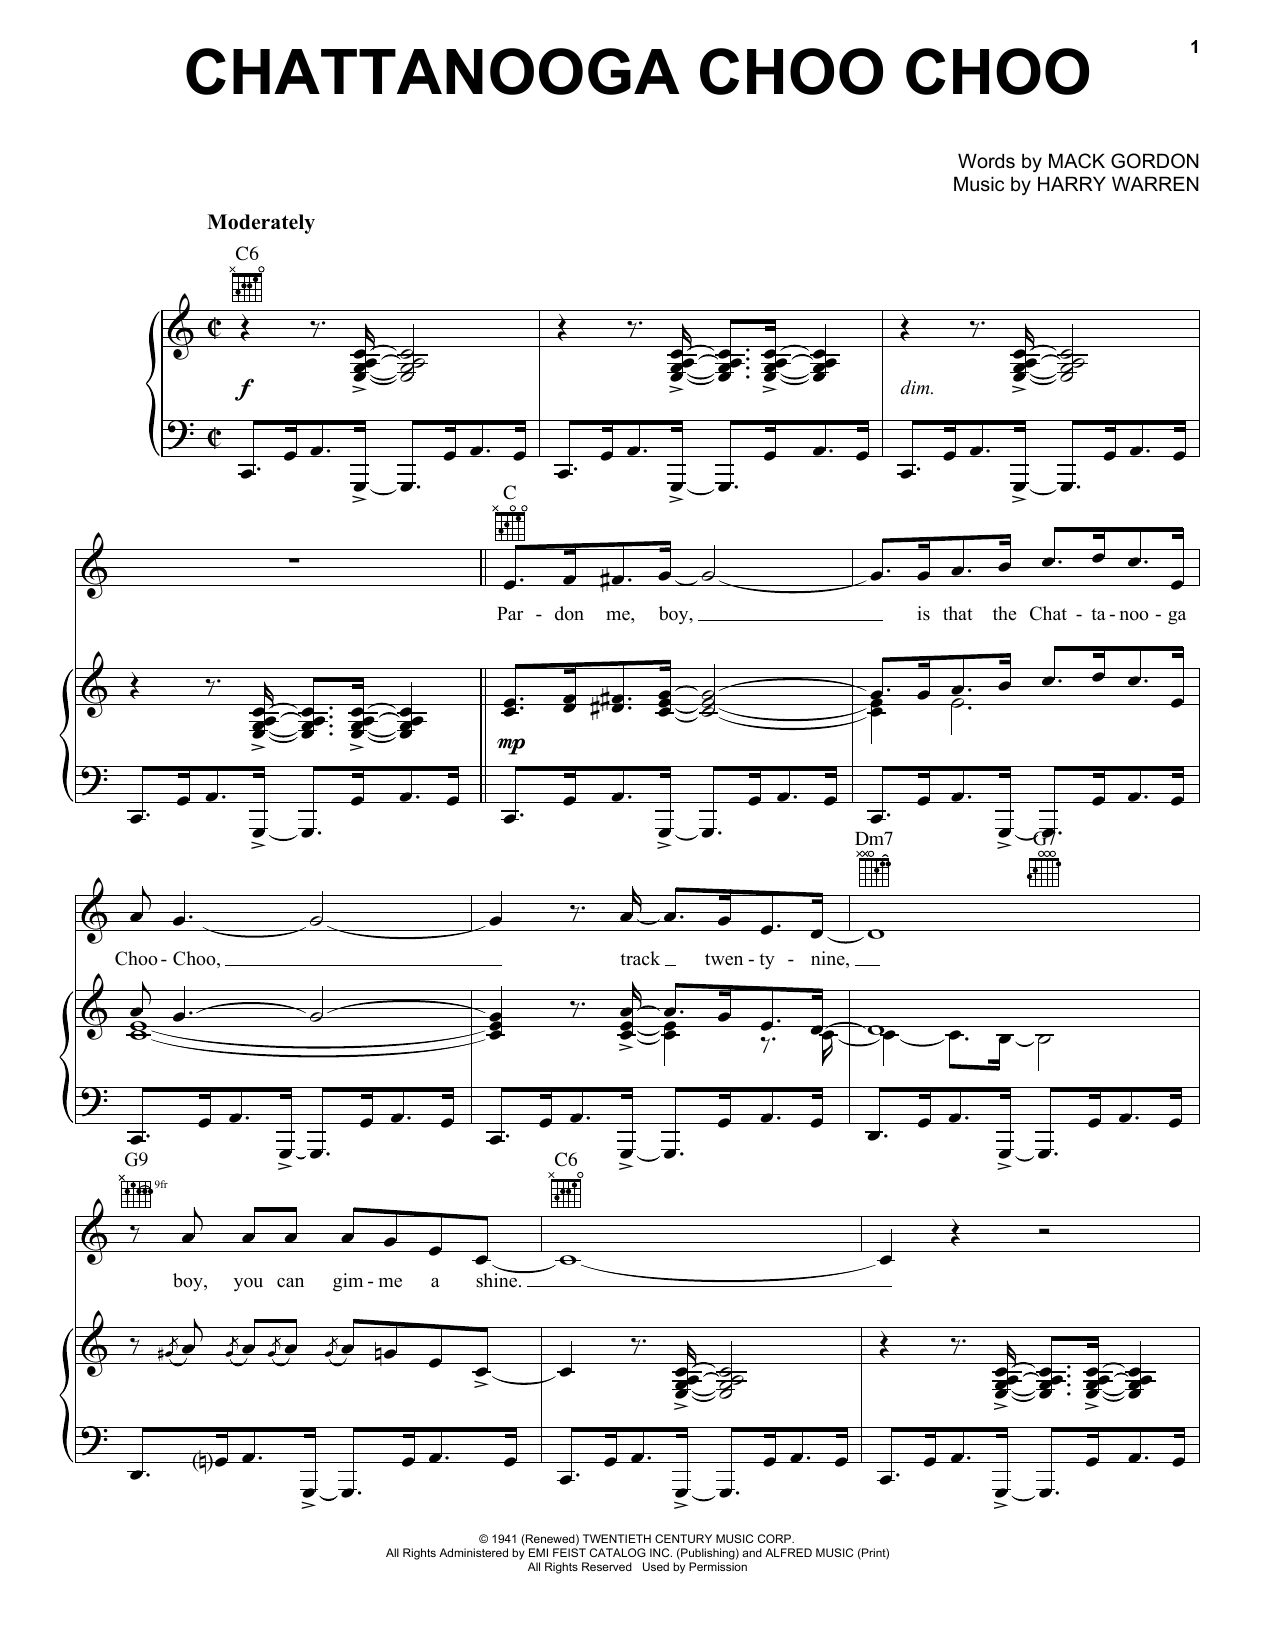 Glenn Miller Chattanooga Choo Choo sheet music notes and chords. Download Printable PDF.